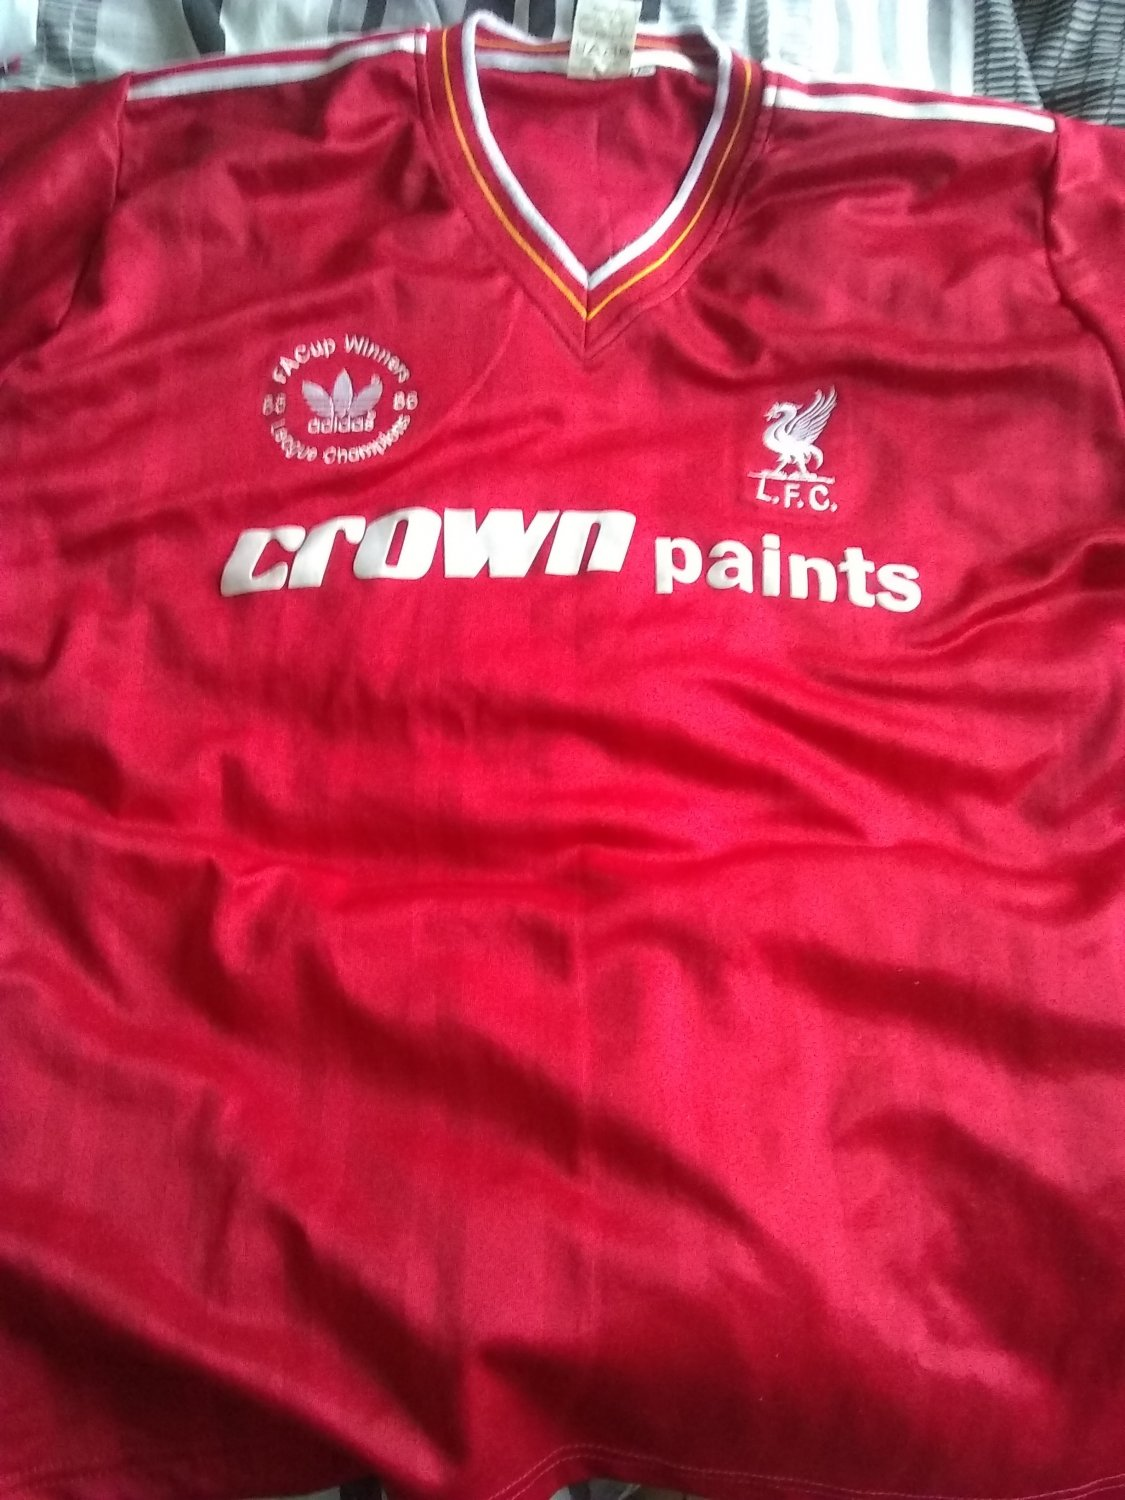 9038a0c31 Liverpool Home Maillot de foot 1985 - 1986. Sponsored by Crown Paints